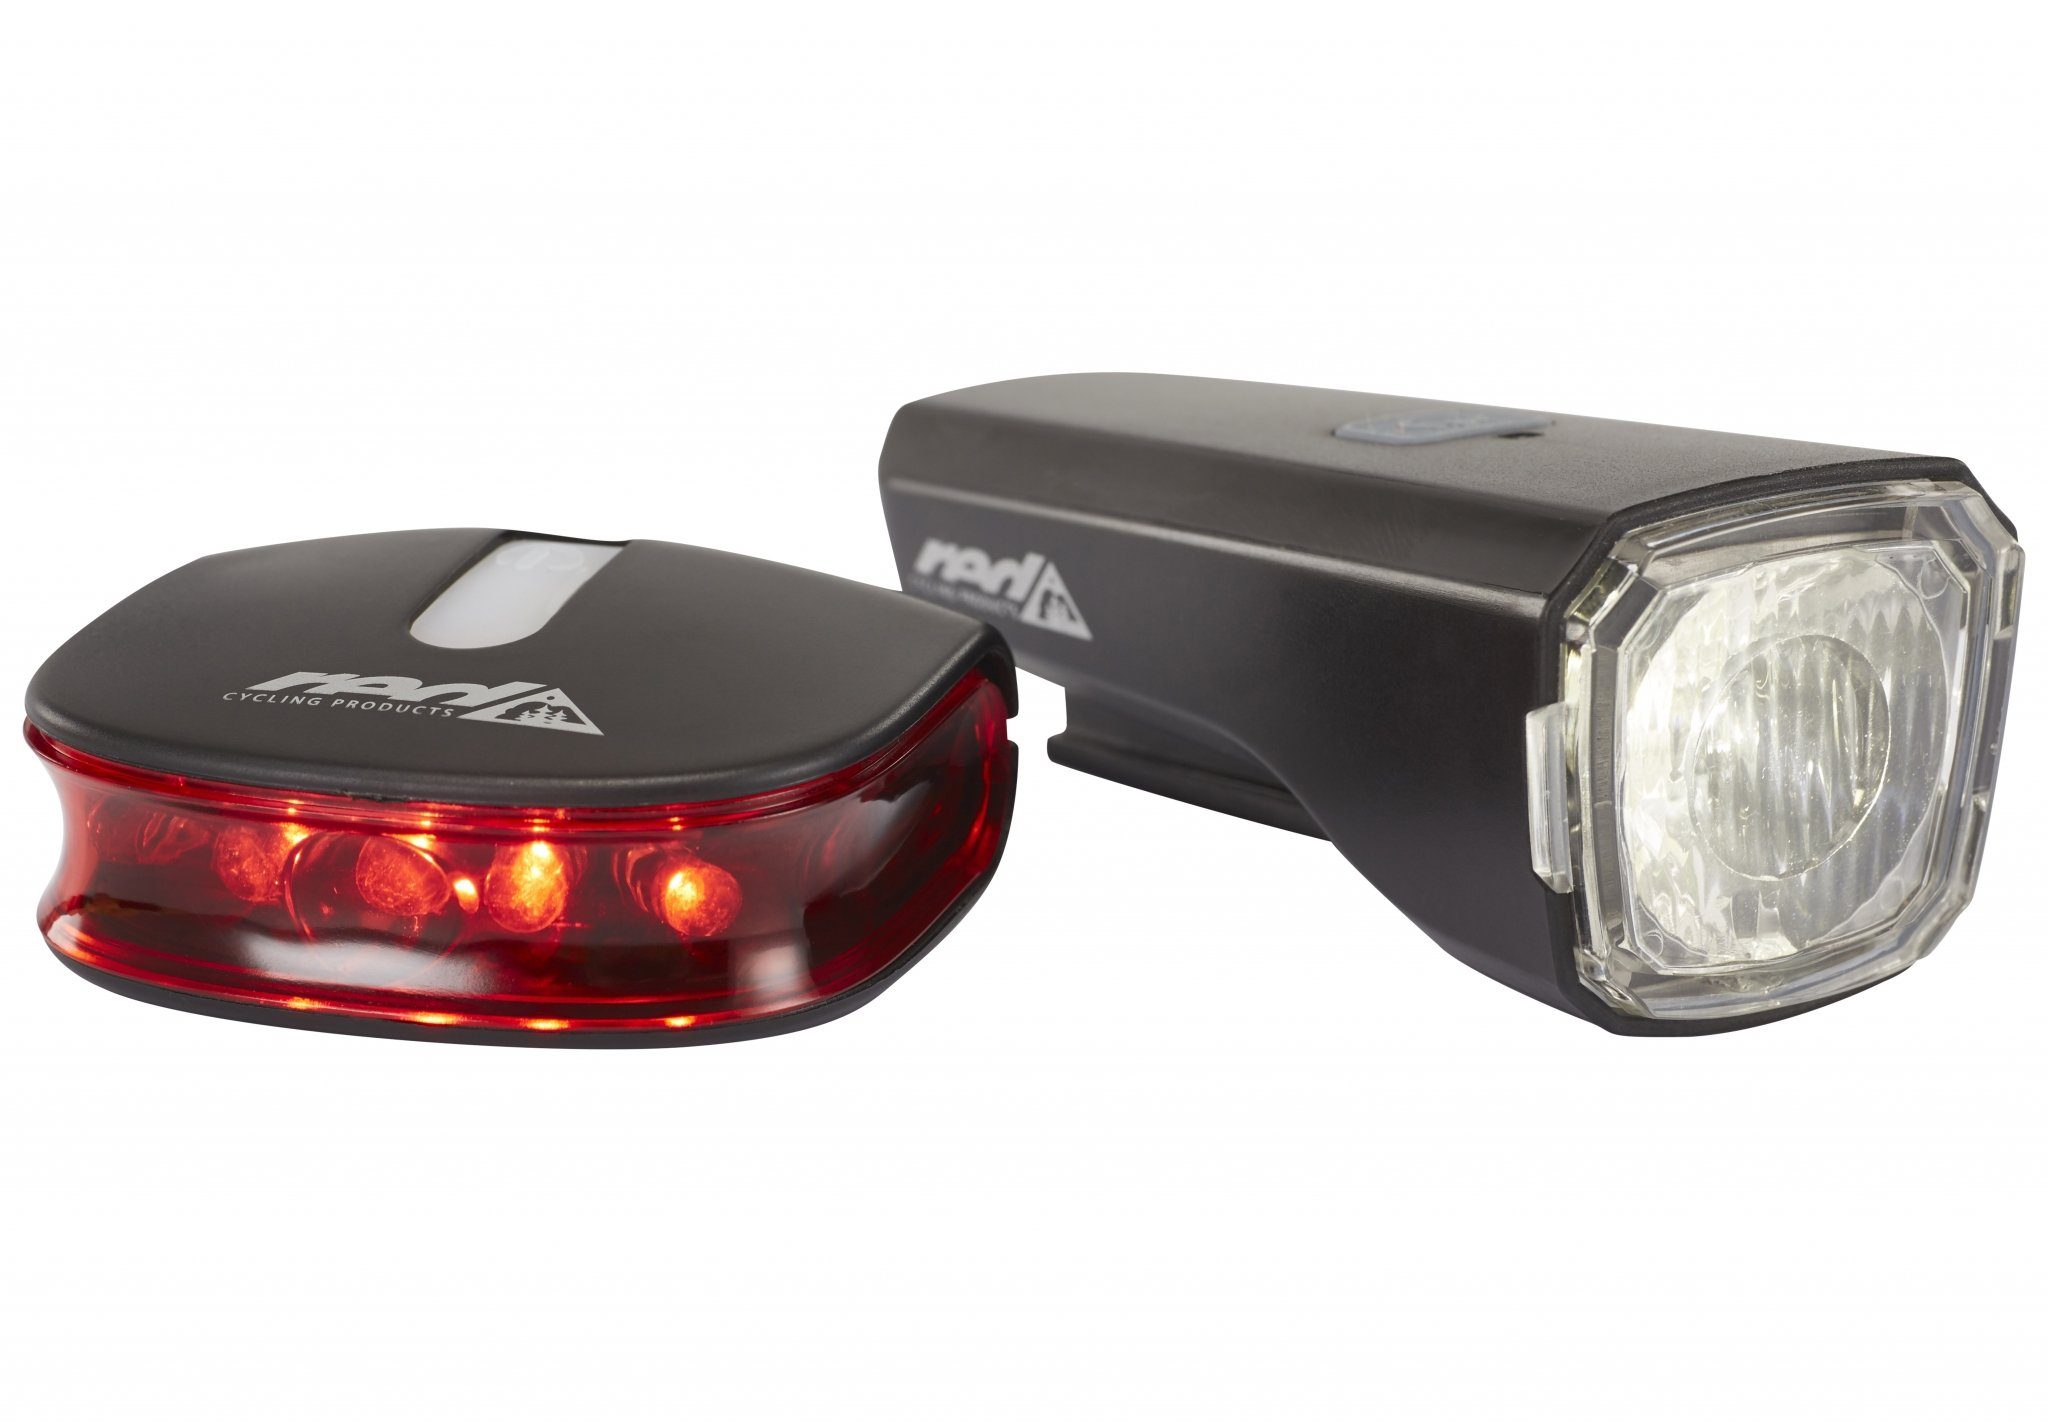 Red Cycling Products Fahrradbeleuchtung »Red Cycling Products Eco LED USB Beleuchtungsset«